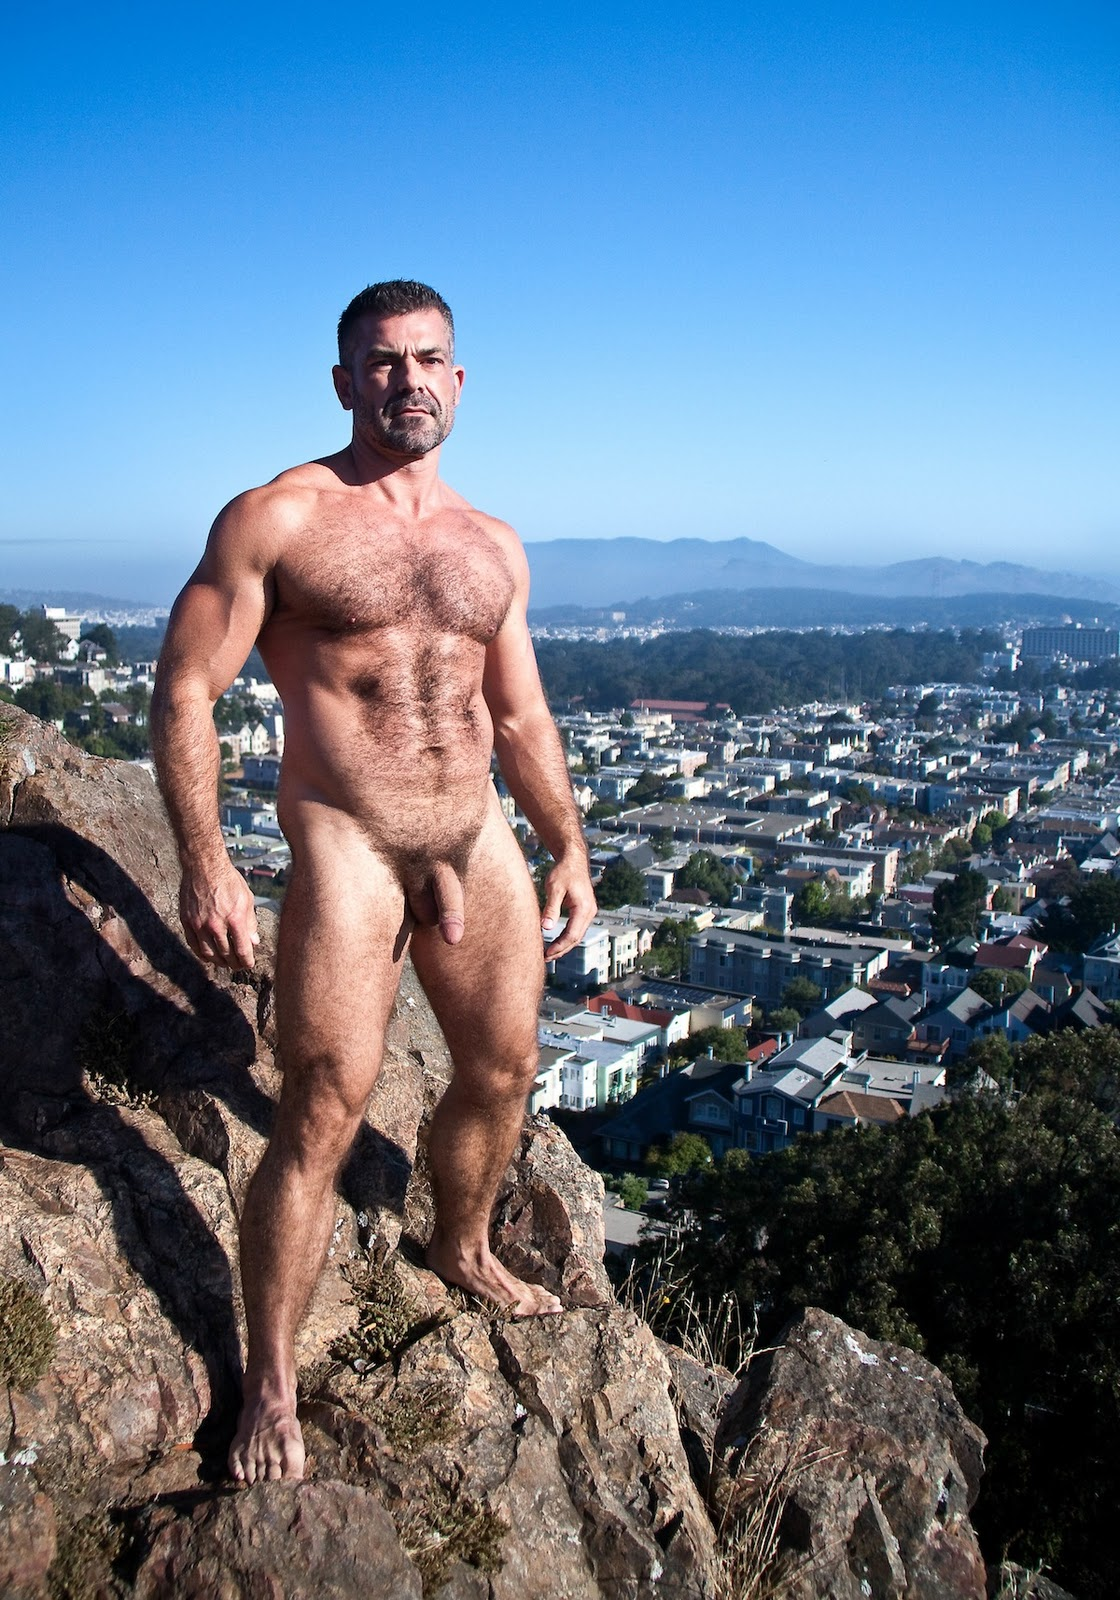 Very naked mountain men message